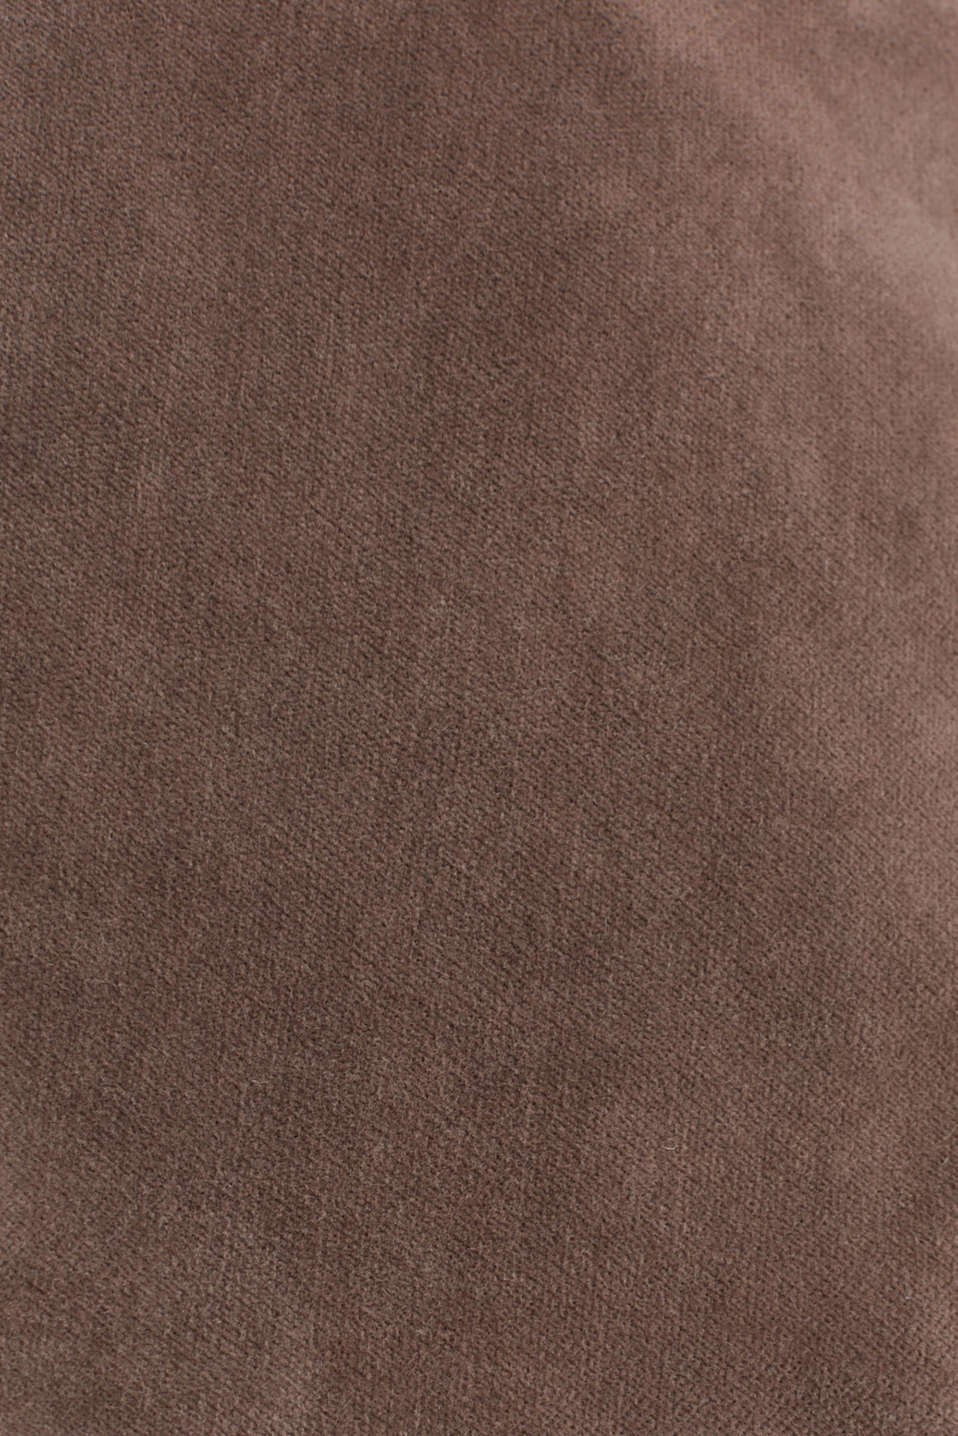 Velvet blazer with stretch for comfort, LIGHT TAUPE, detail image number 4